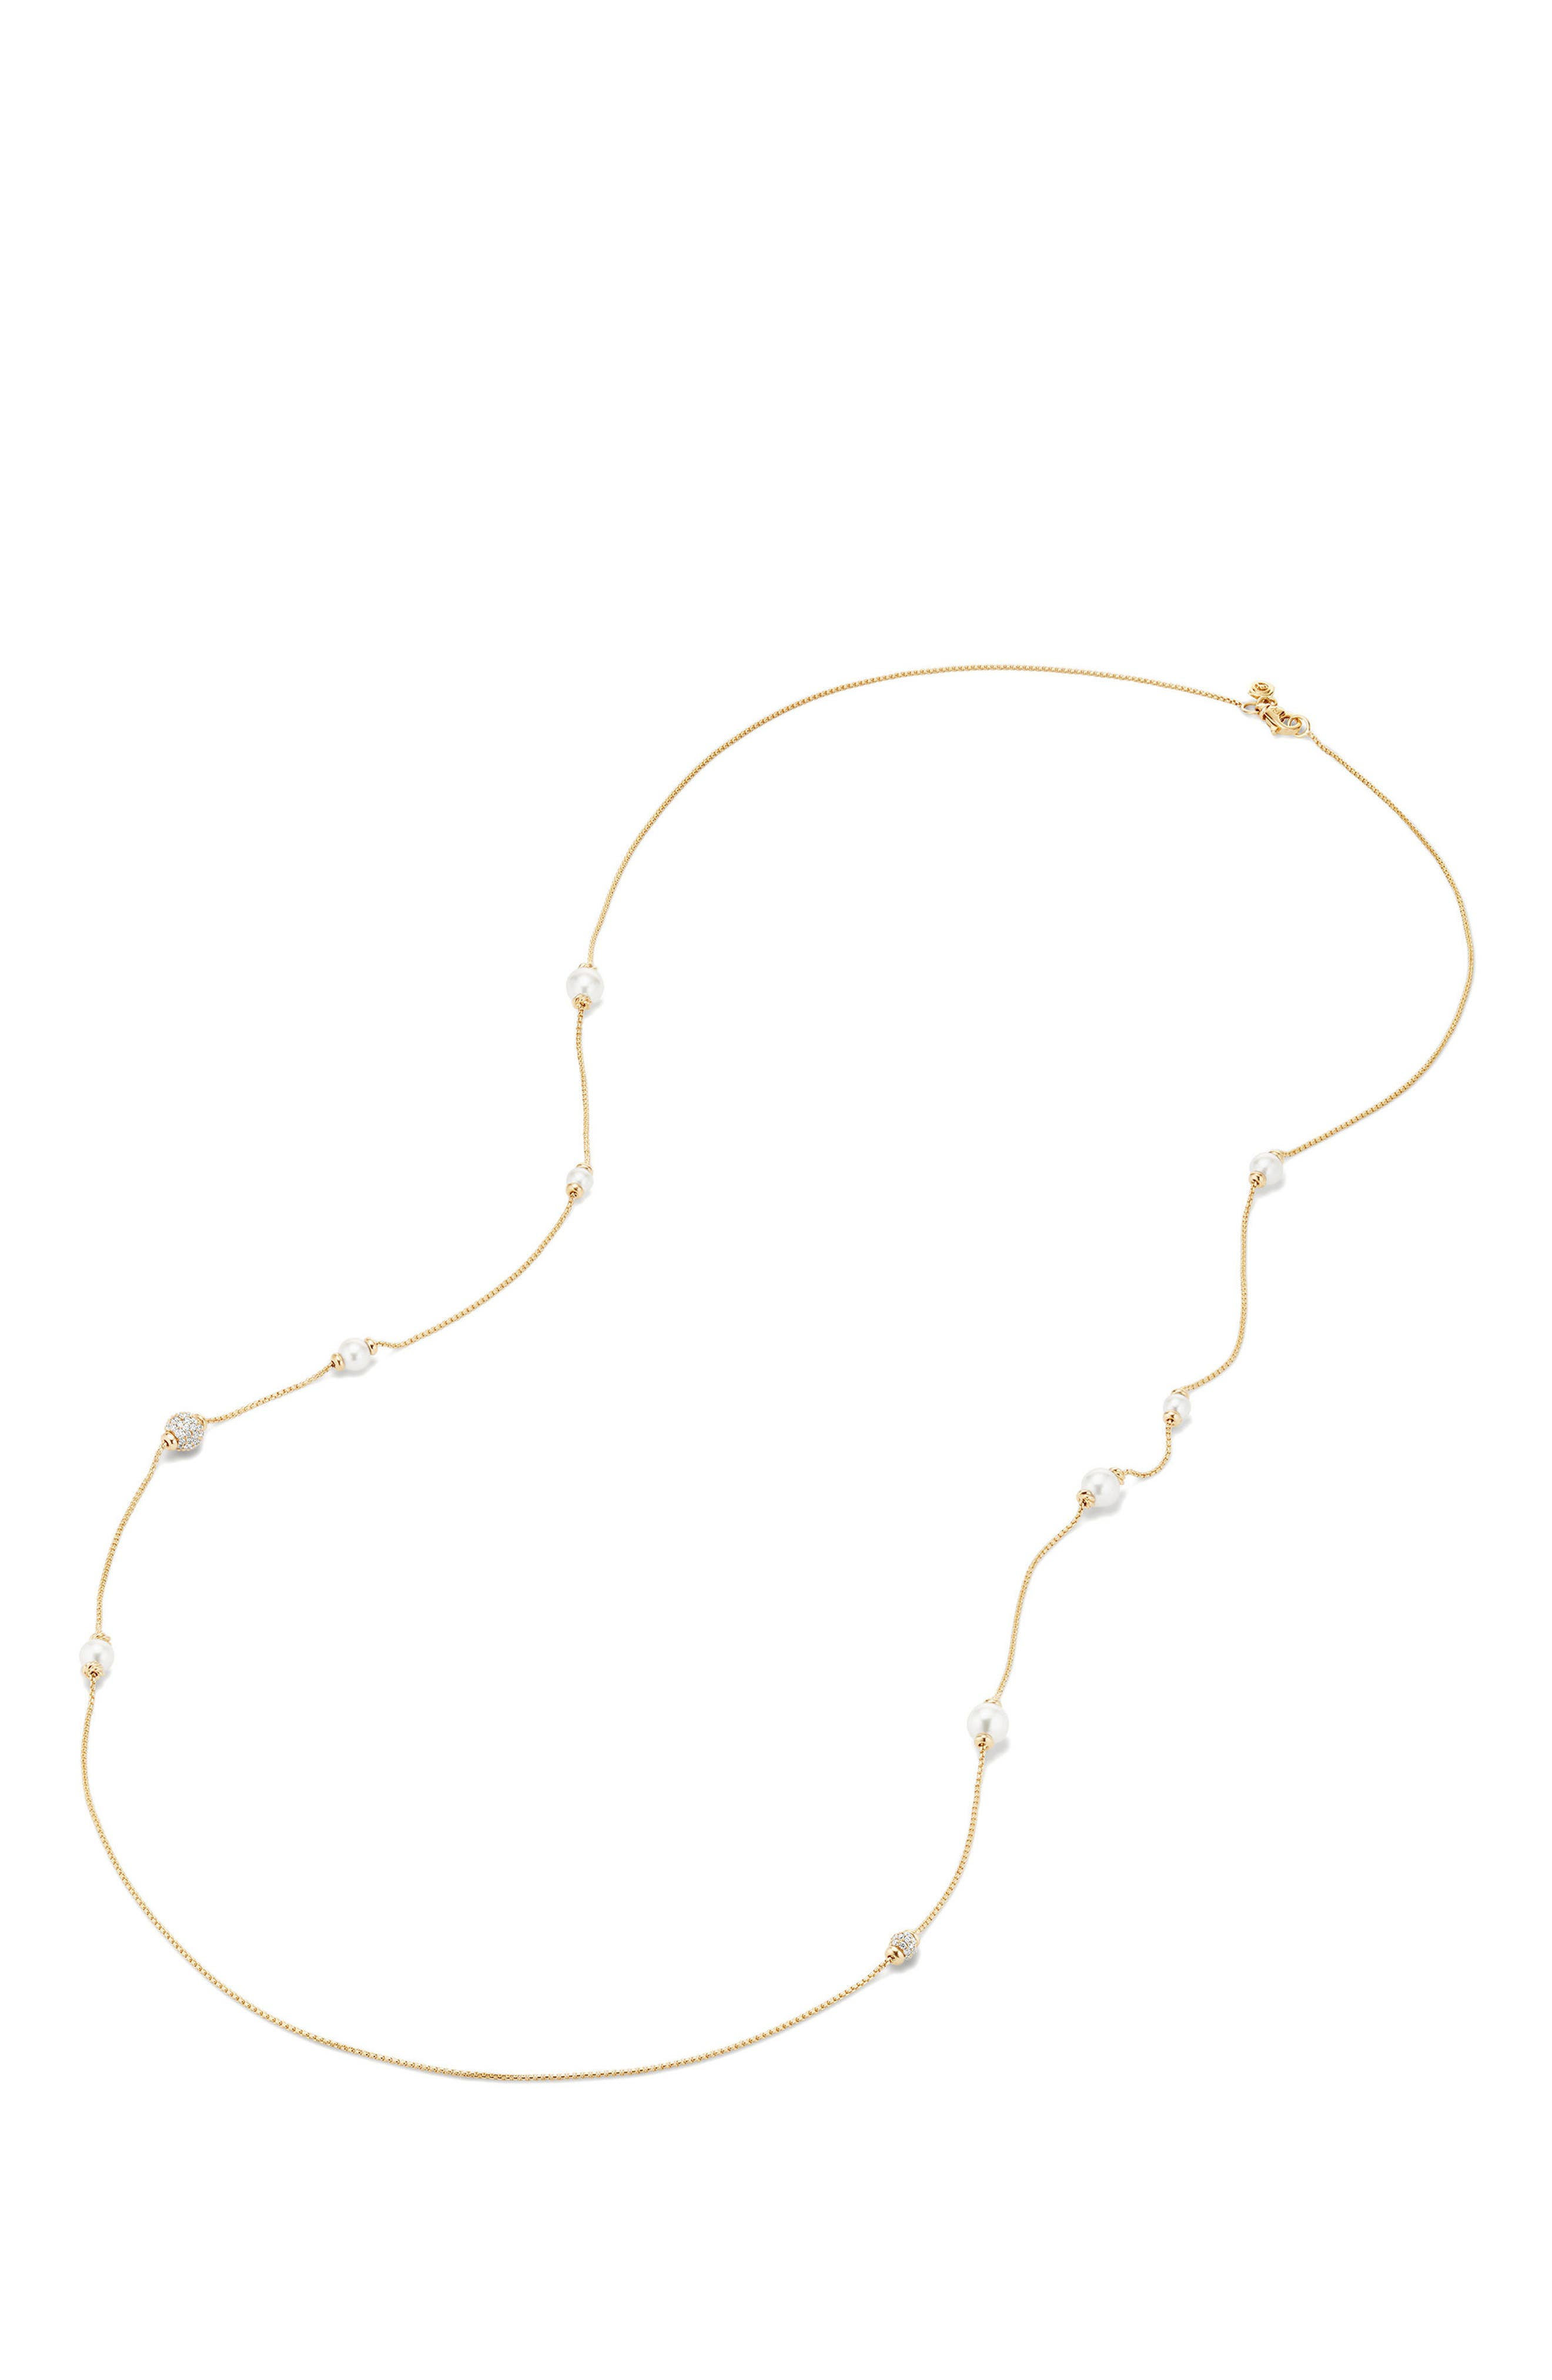 Solari Long Station Necklace with Pearls & Diamonds in 18K Yellow Gold,                             Alternate thumbnail 2, color,                             Yellow Gold/ Diamond/ Pearl